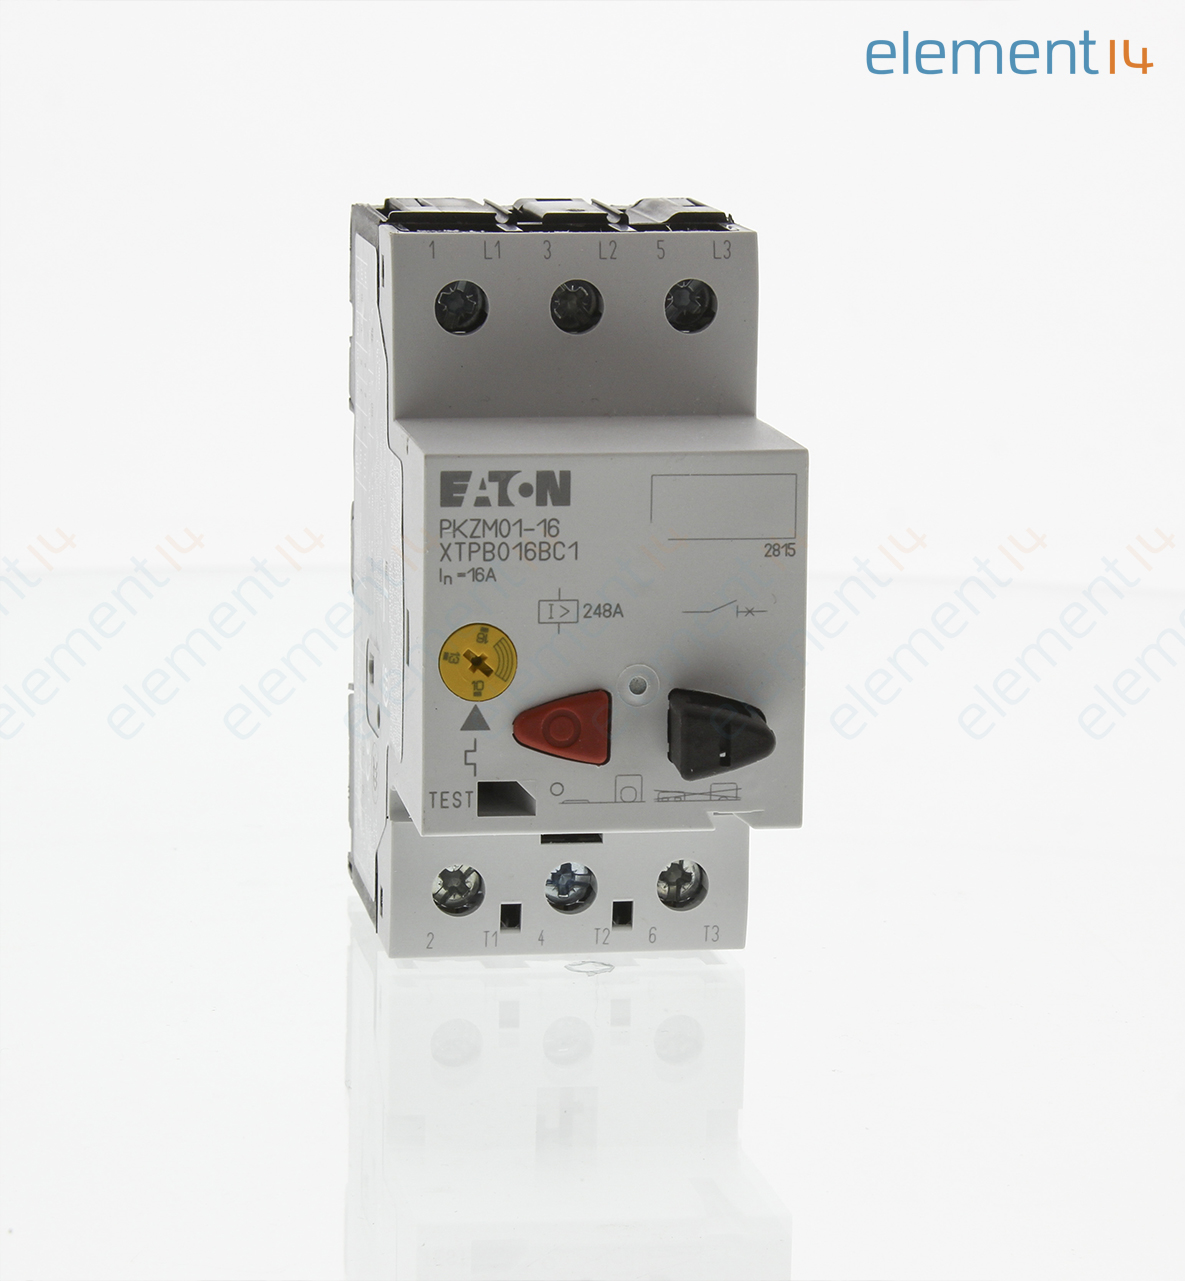 Xtpb016bc1 Eaton Cutler Hammer Motor Starter Xt Series Iec Electric Circuit Breakermotor Breaker Product On Add To Compare The Actual